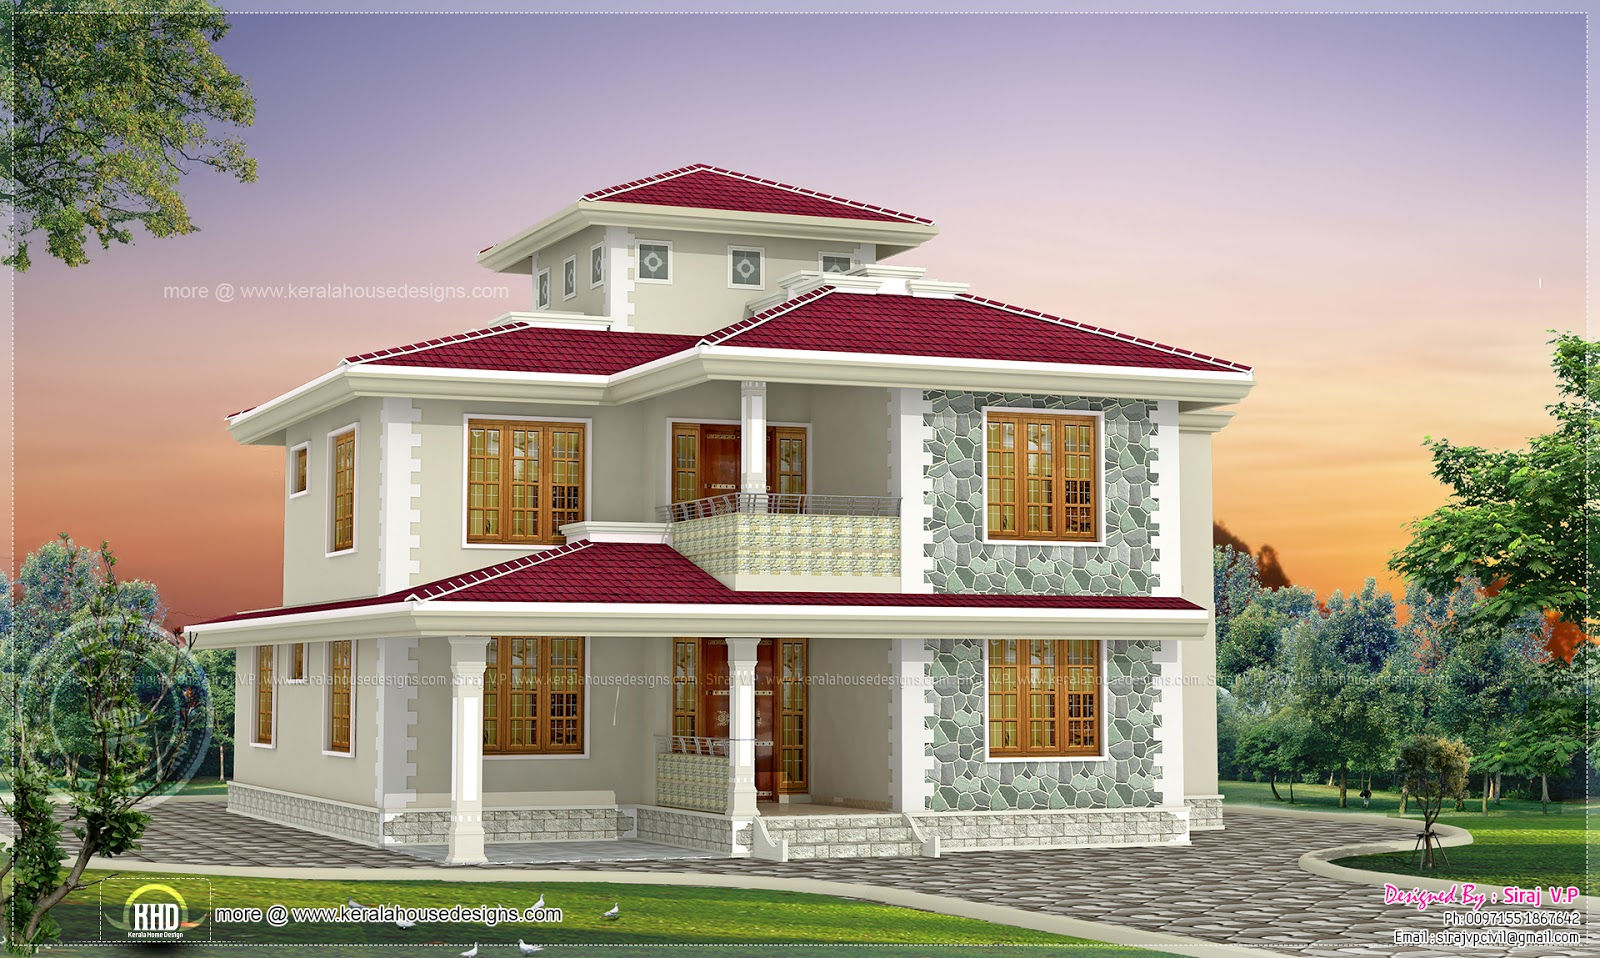 4 bhk kerala style home design kerala home design and for Kerala style house plans with photos